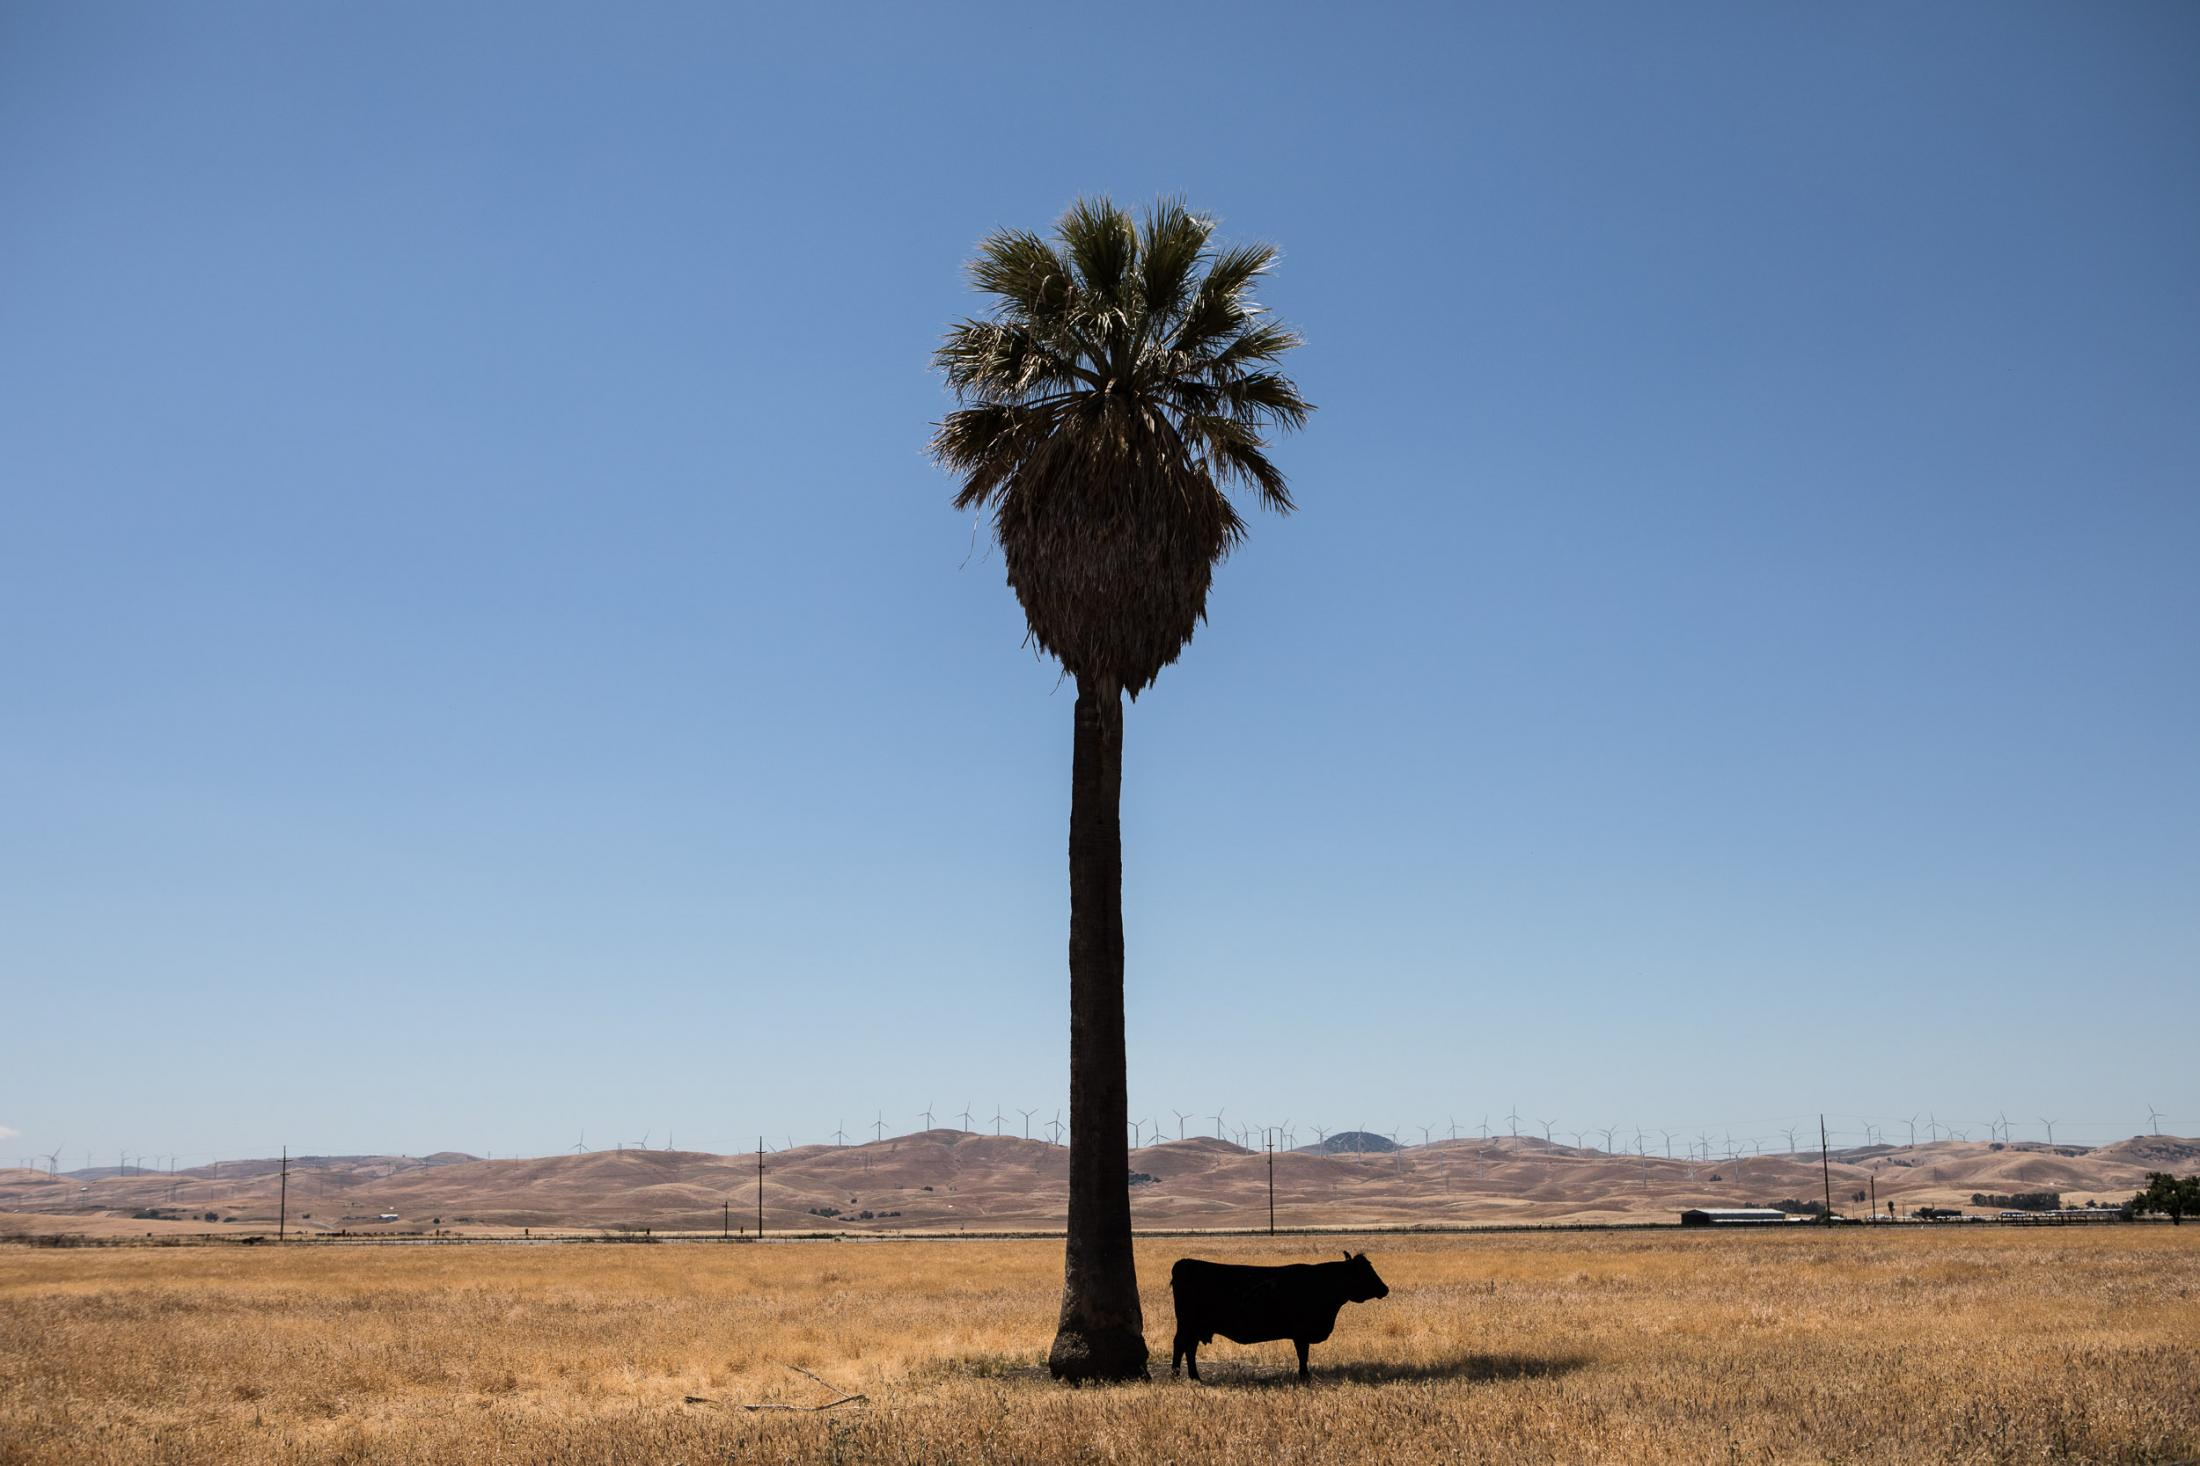 12. One palm tree and one cow. May 2018